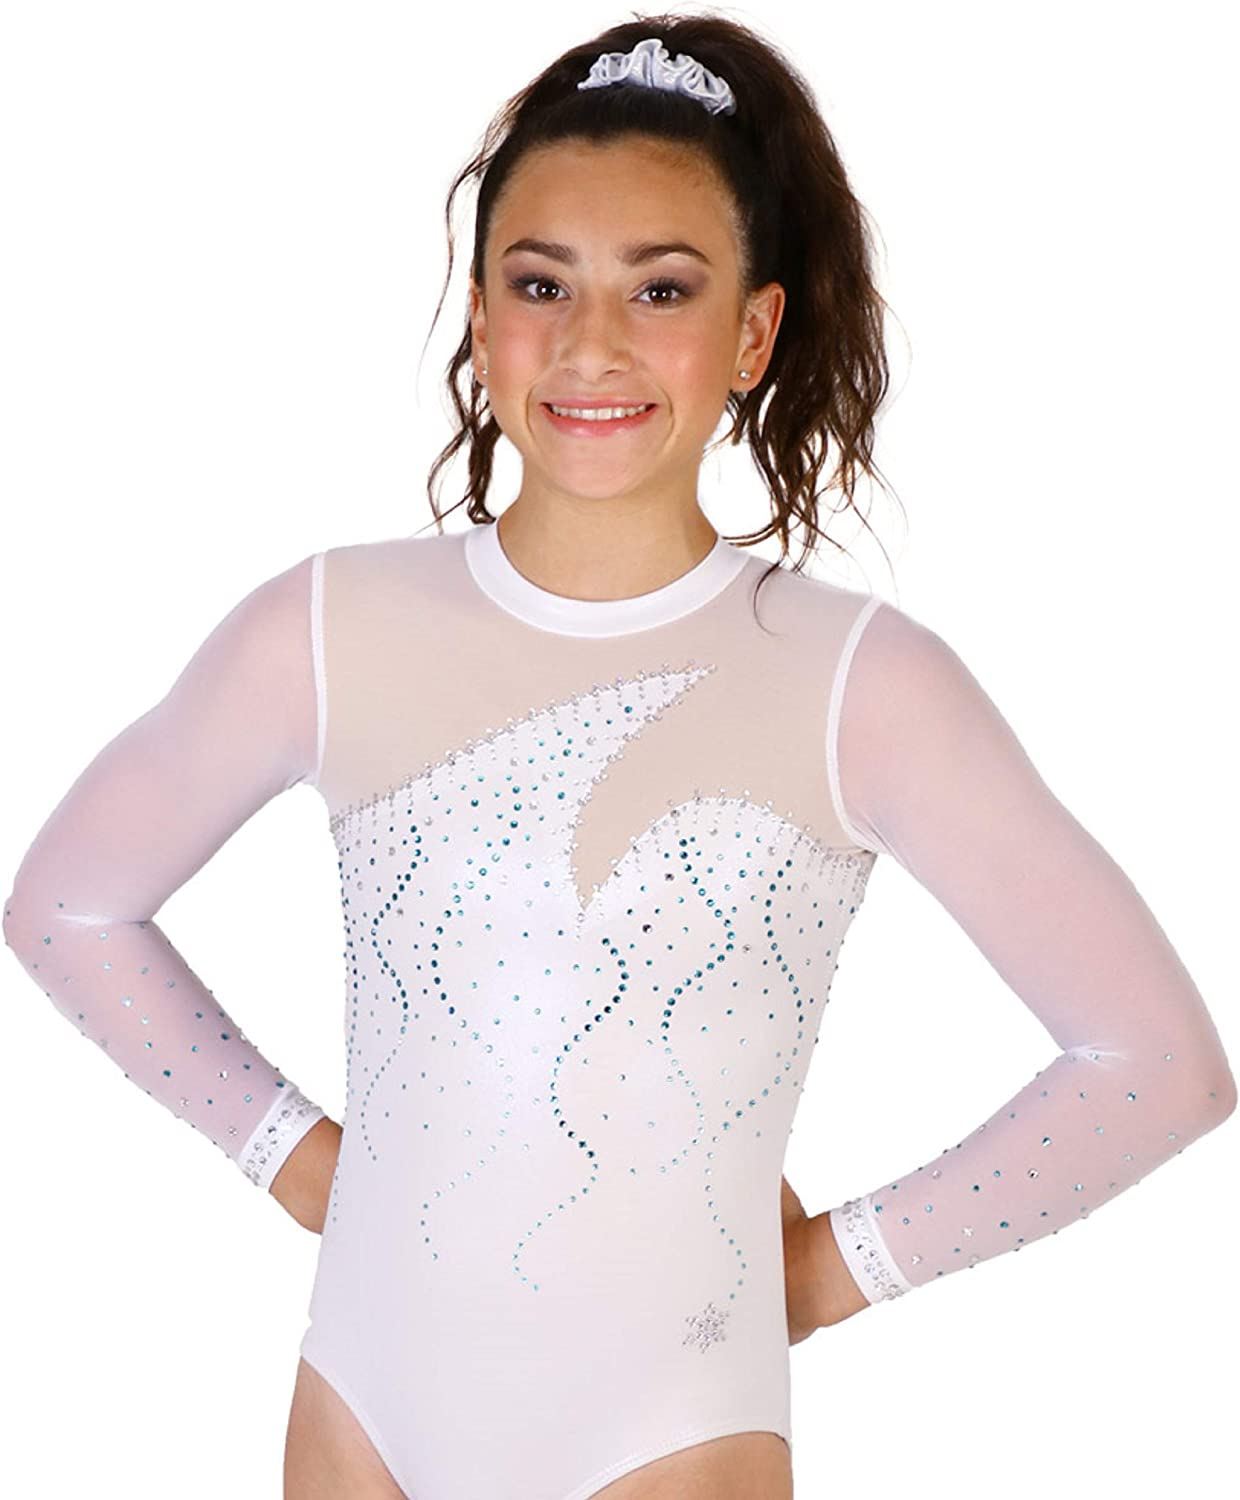 Snowflake Designs Ethereal Gymnastics OFFicial shop Sleeve Le Long Competition online shopping